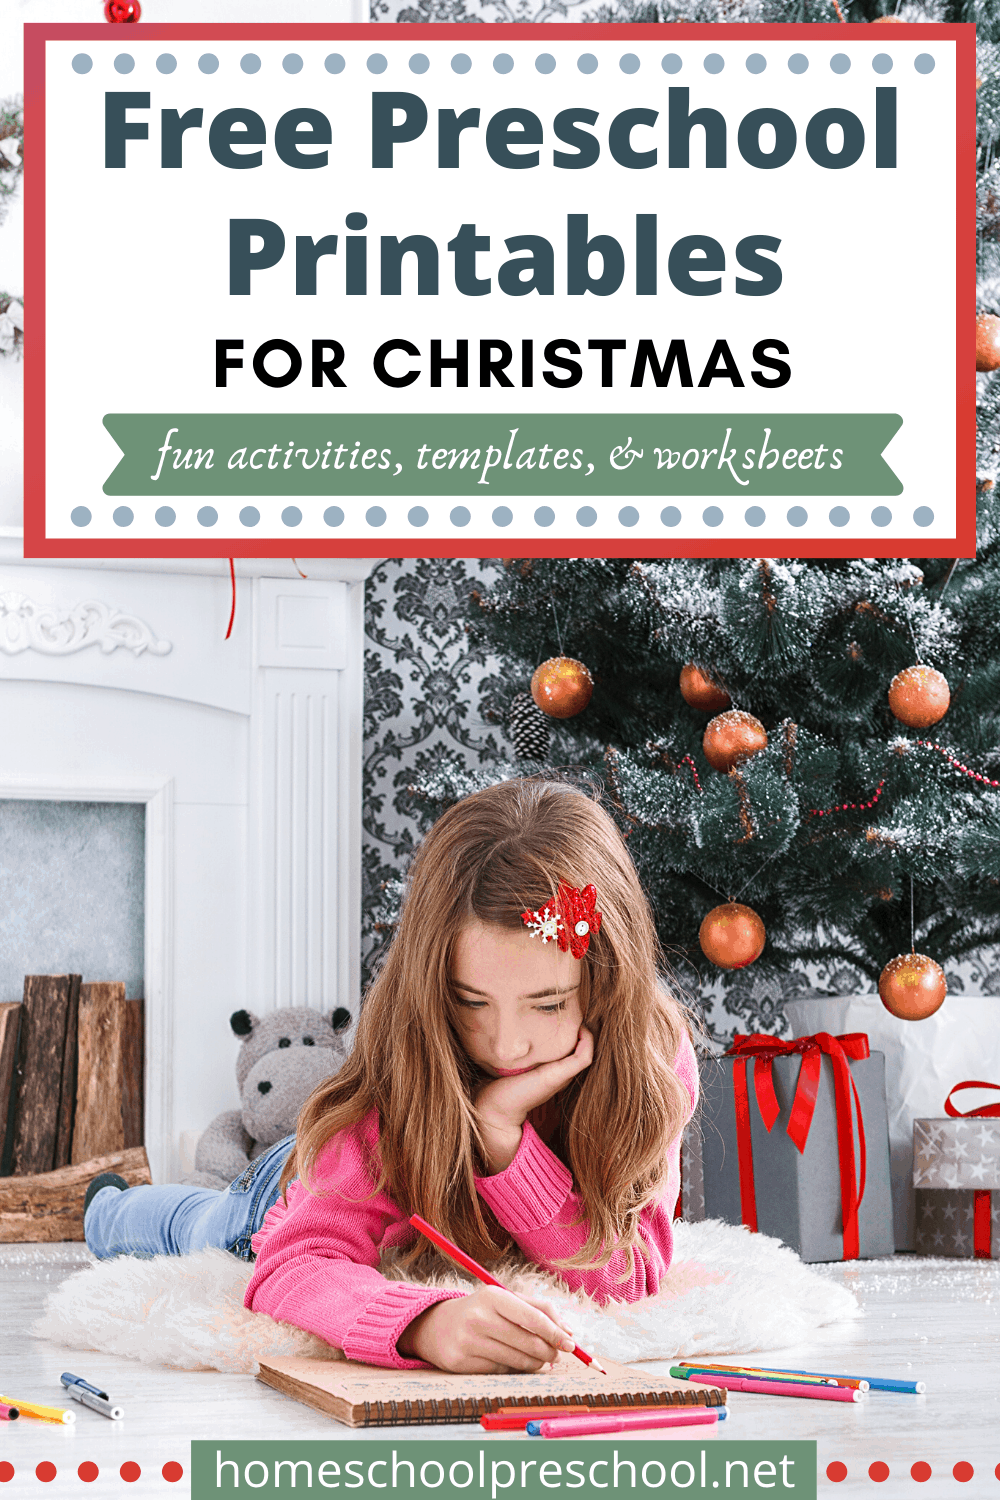 Whether you're looking for worksheets, templates, or activities to do with your kids, don't miss this collection of preschool Christmas printables!